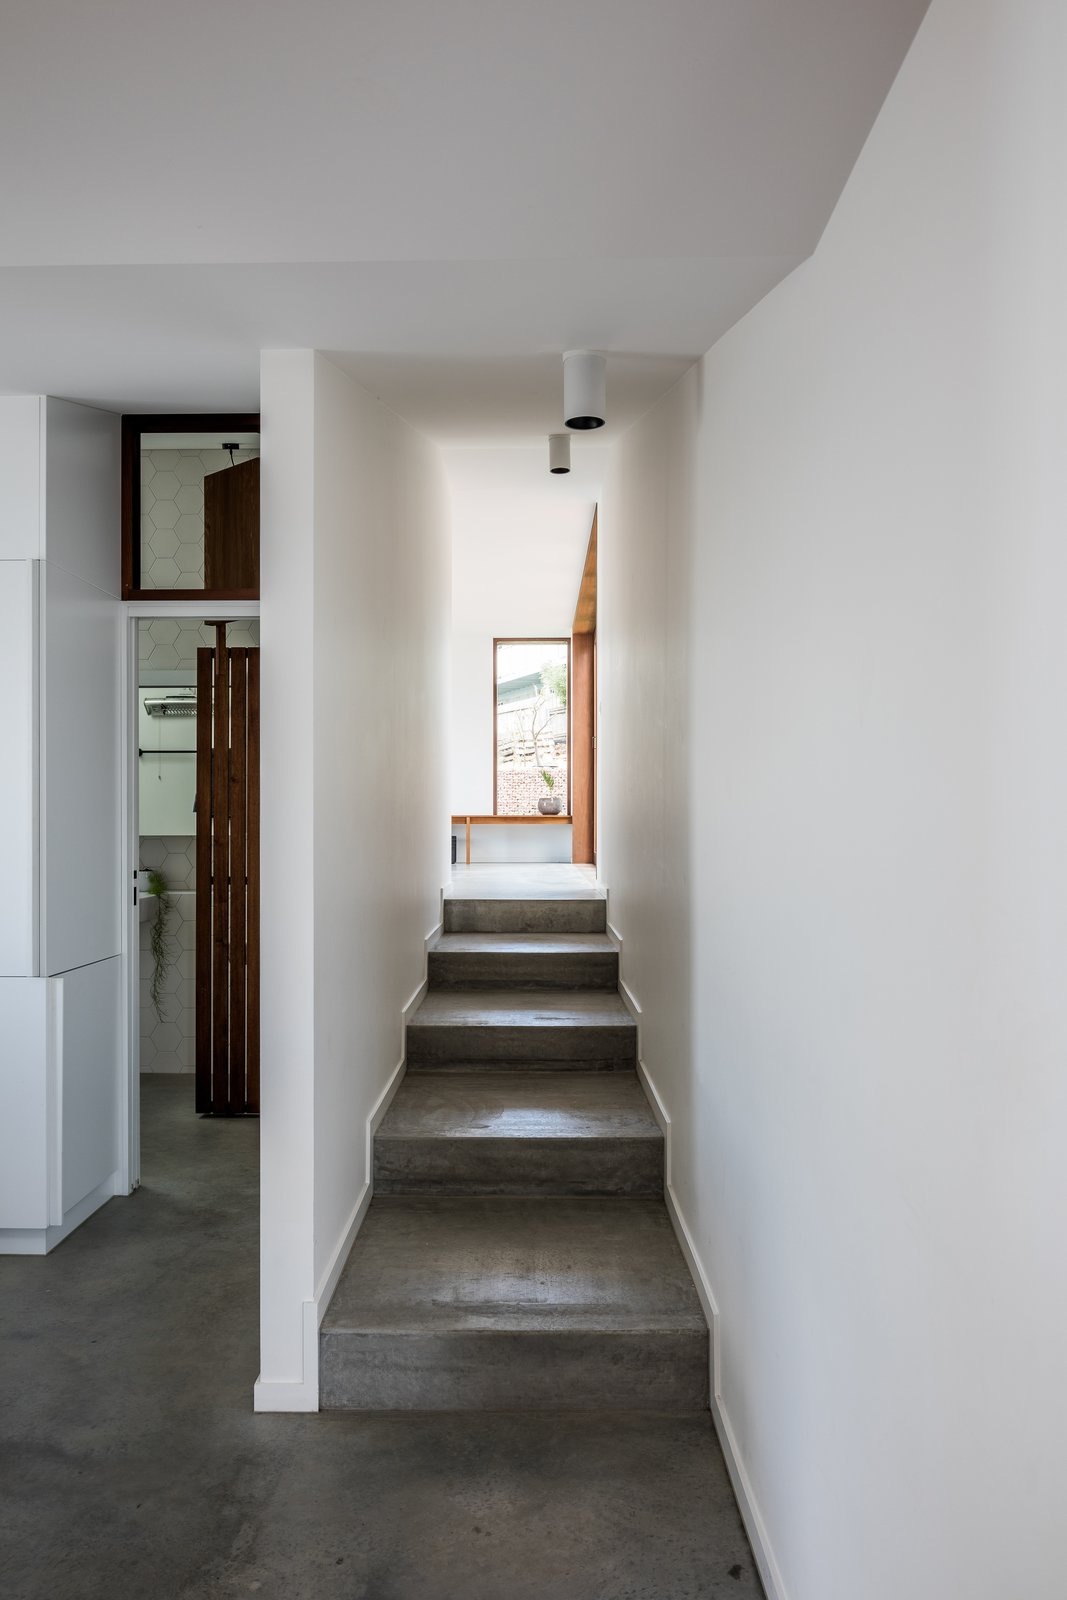 The architects signified the extension with a waxed concrete floor. To the left of the staircase is a new bathroom and laundry. The stairs lead up to a new sitting room that connects to the new brick garden terrace.